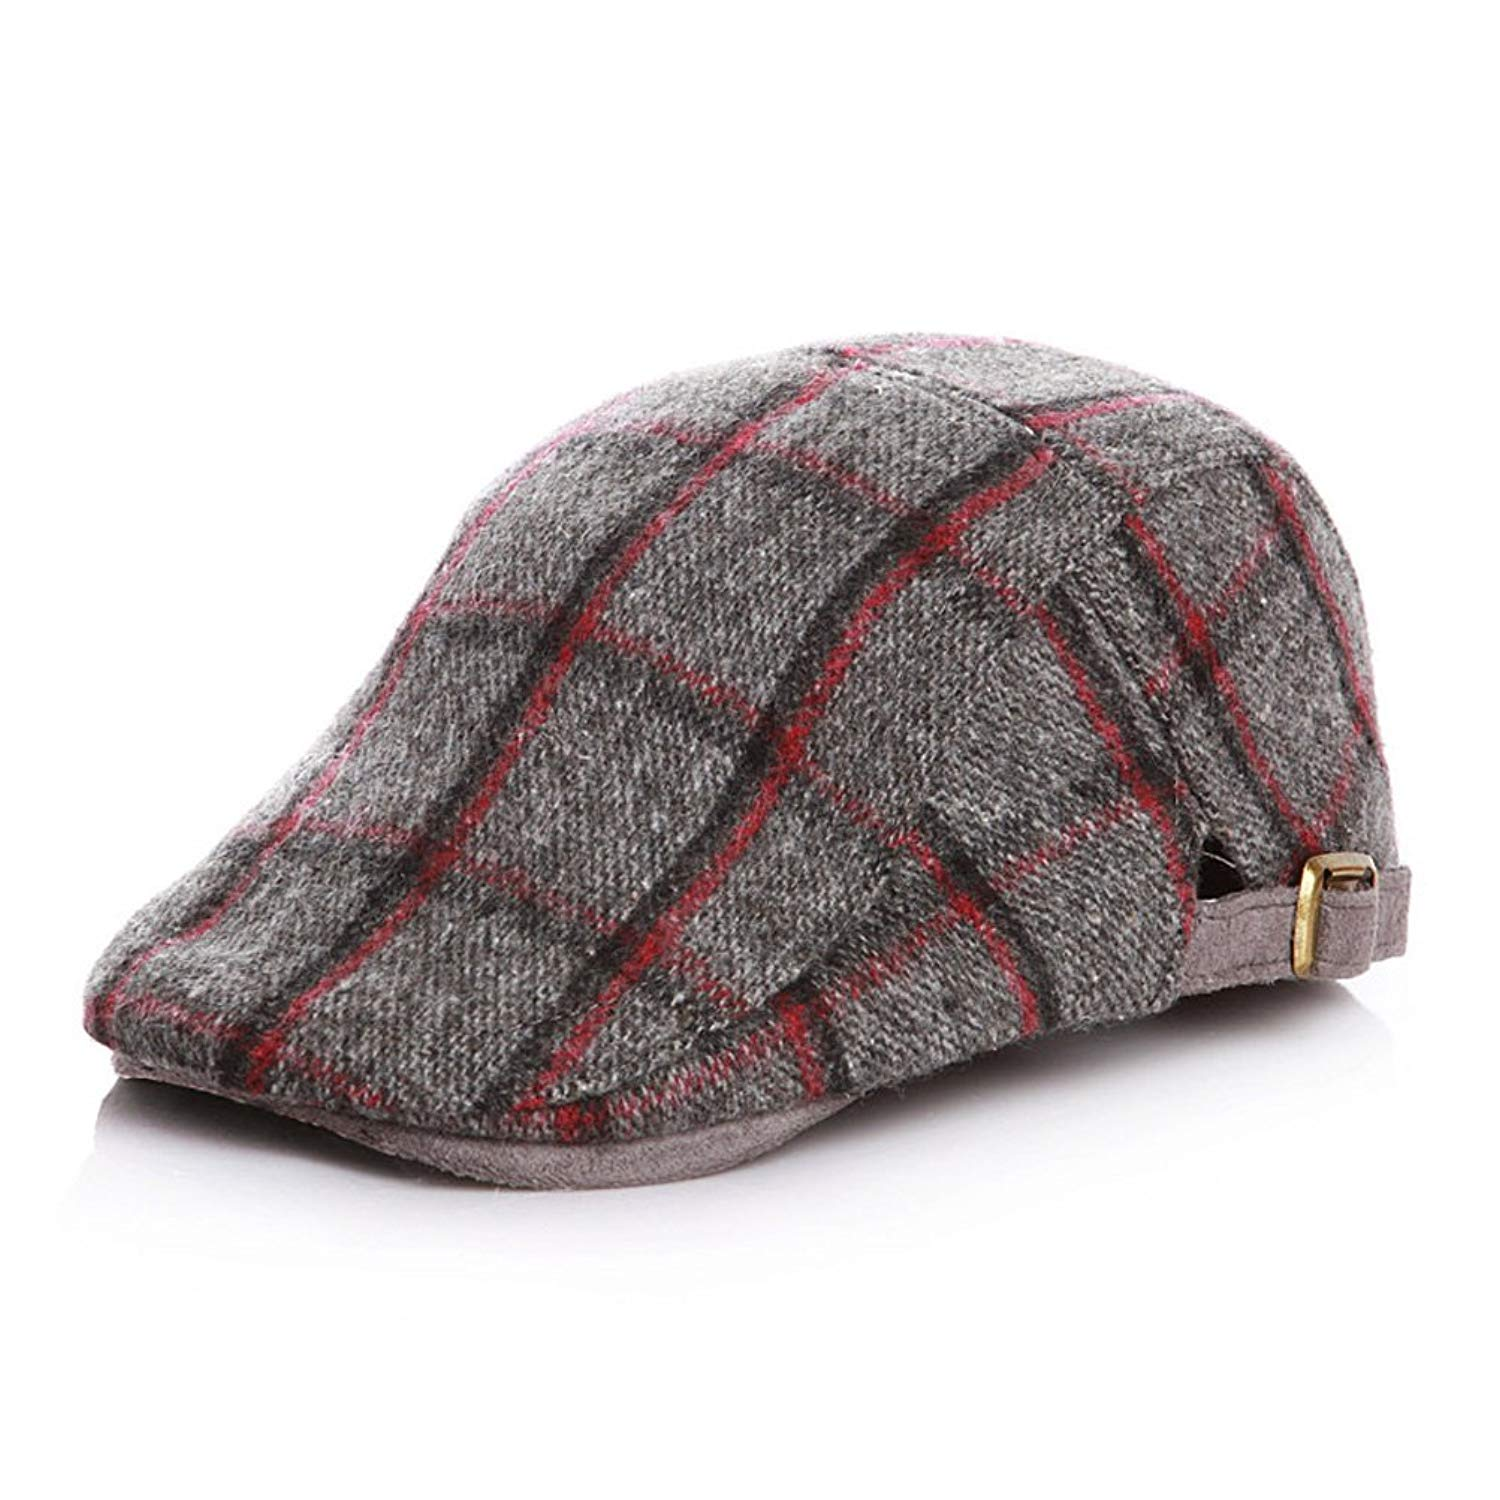 9aa23044835 Get Quotations · ANJUY Caps Kids Tweed Page Boy Newsboy Baby Kids Driver Cap  Hat